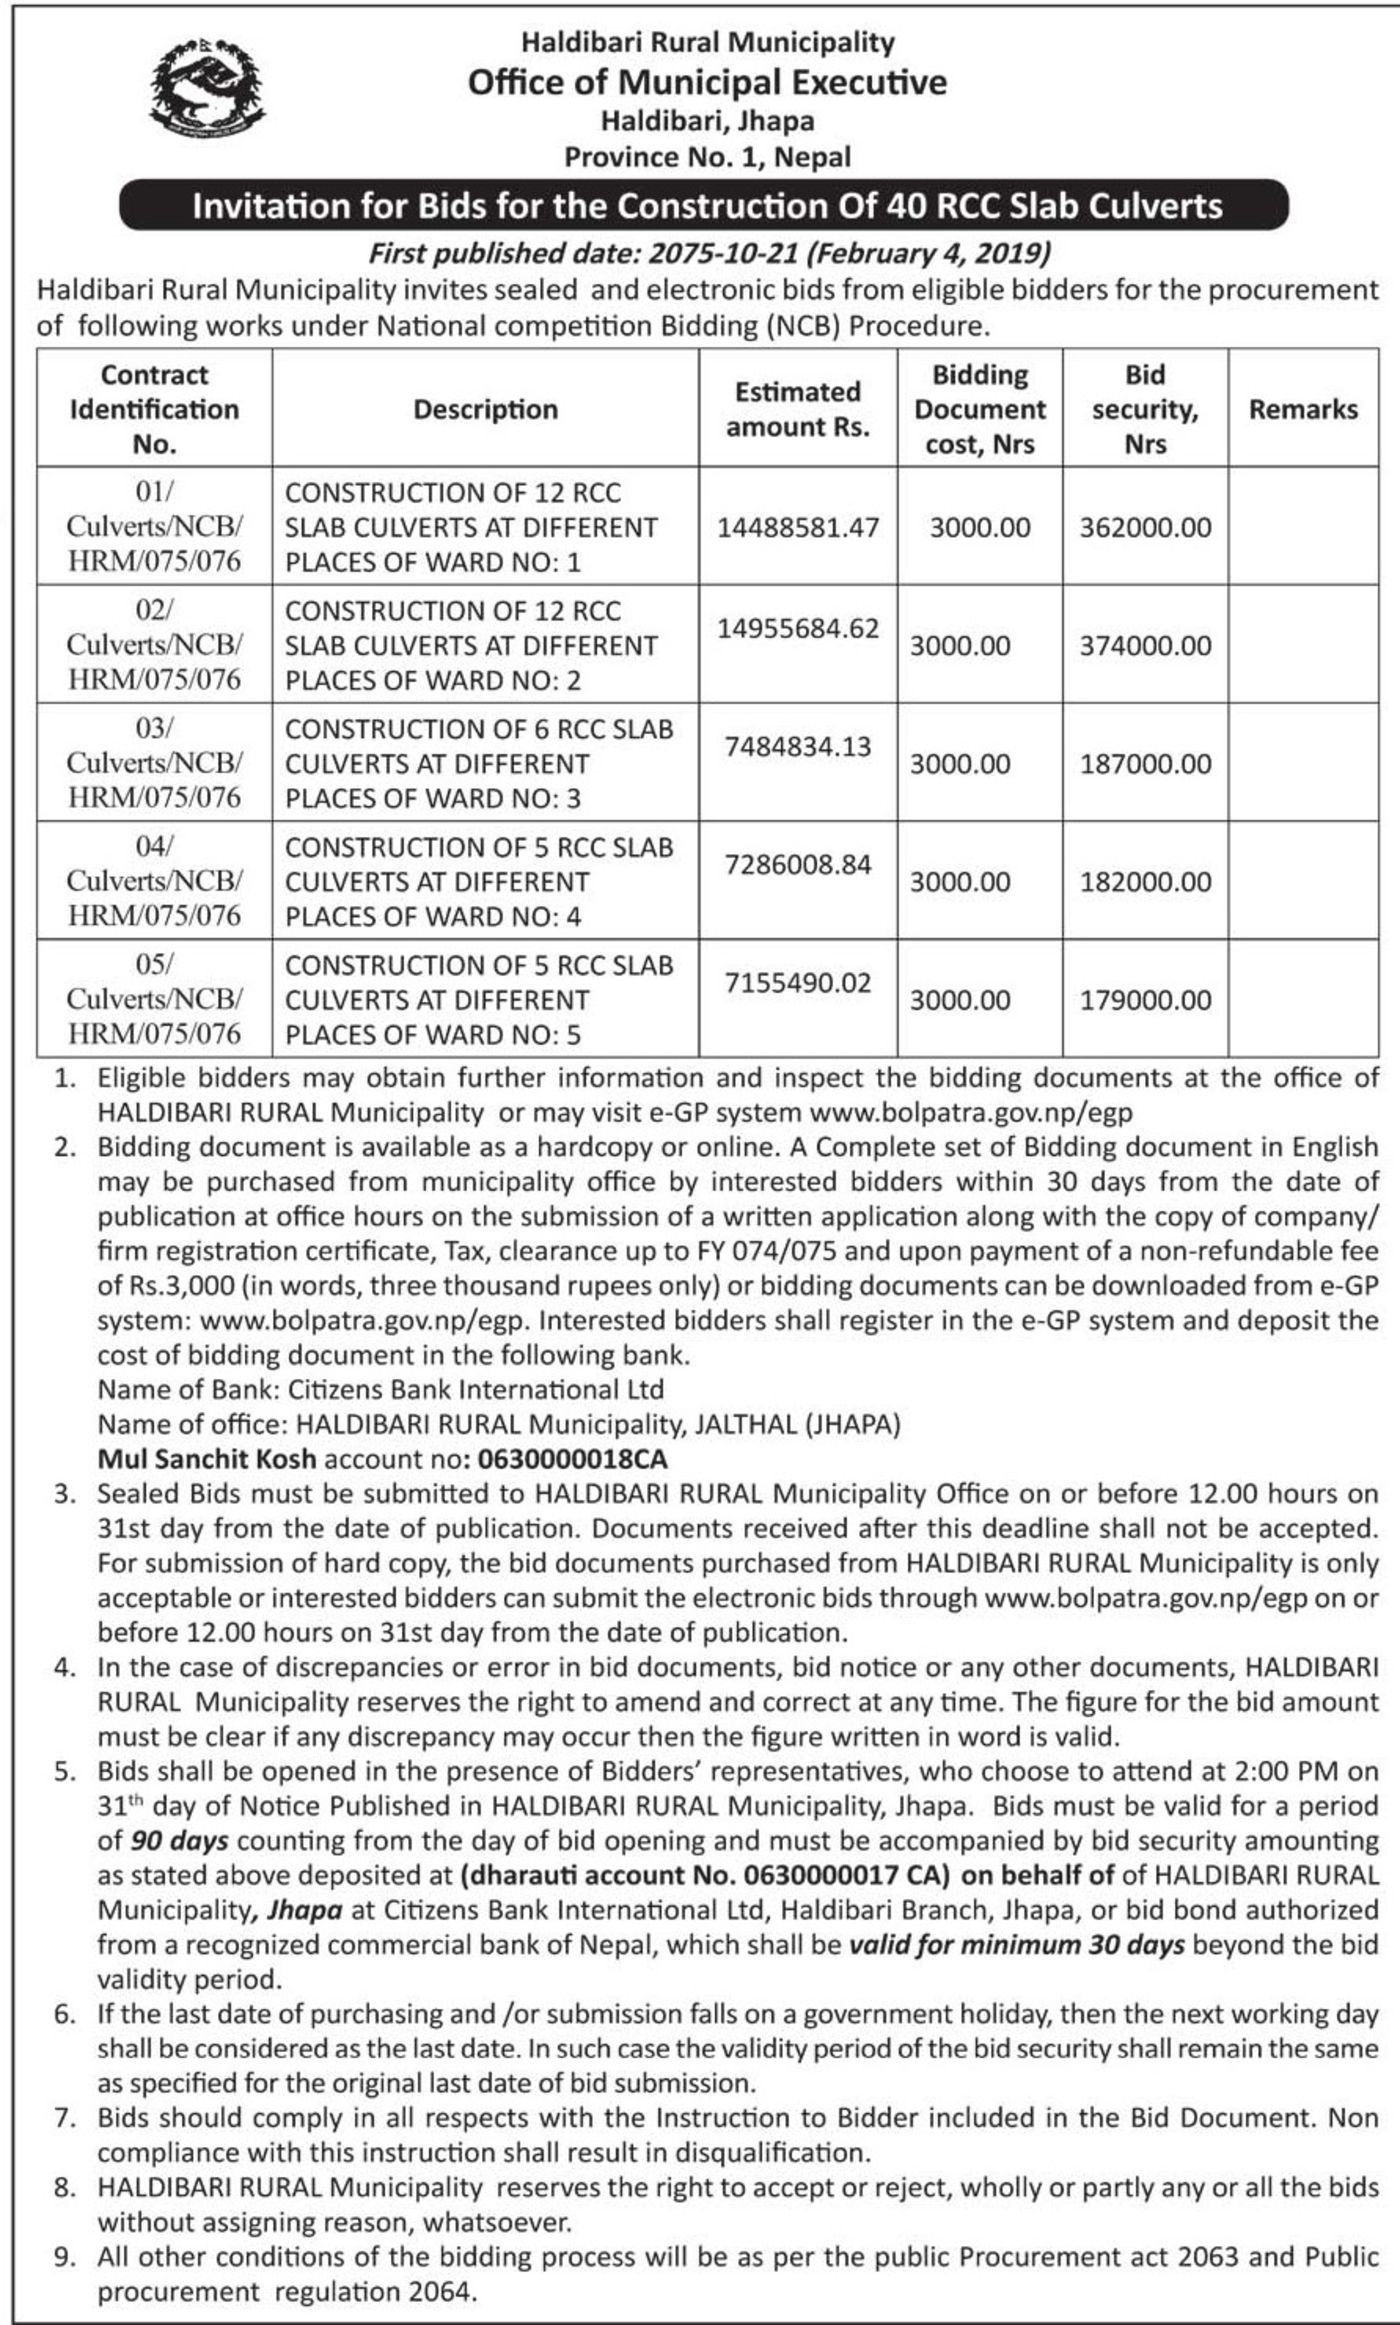 Bids and Tenders Nepal - Invitation For Bids - Construction Of 40